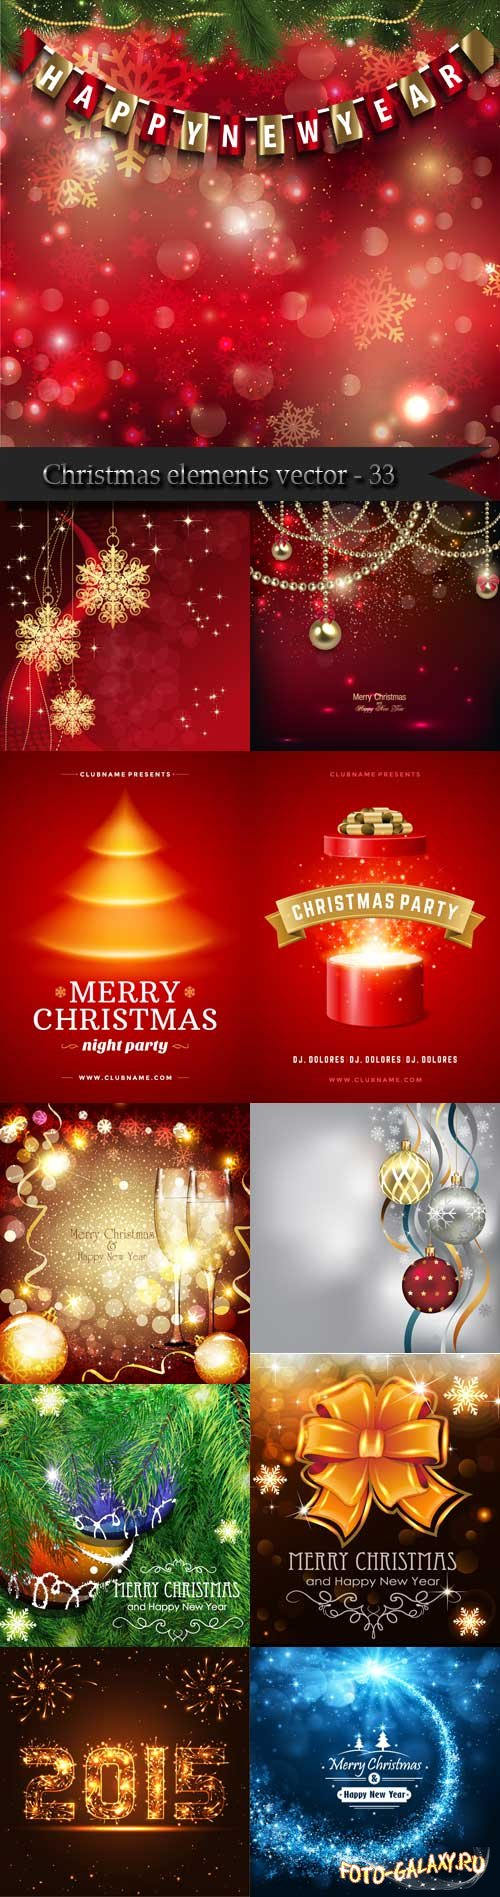 Christmas elements vector - 33